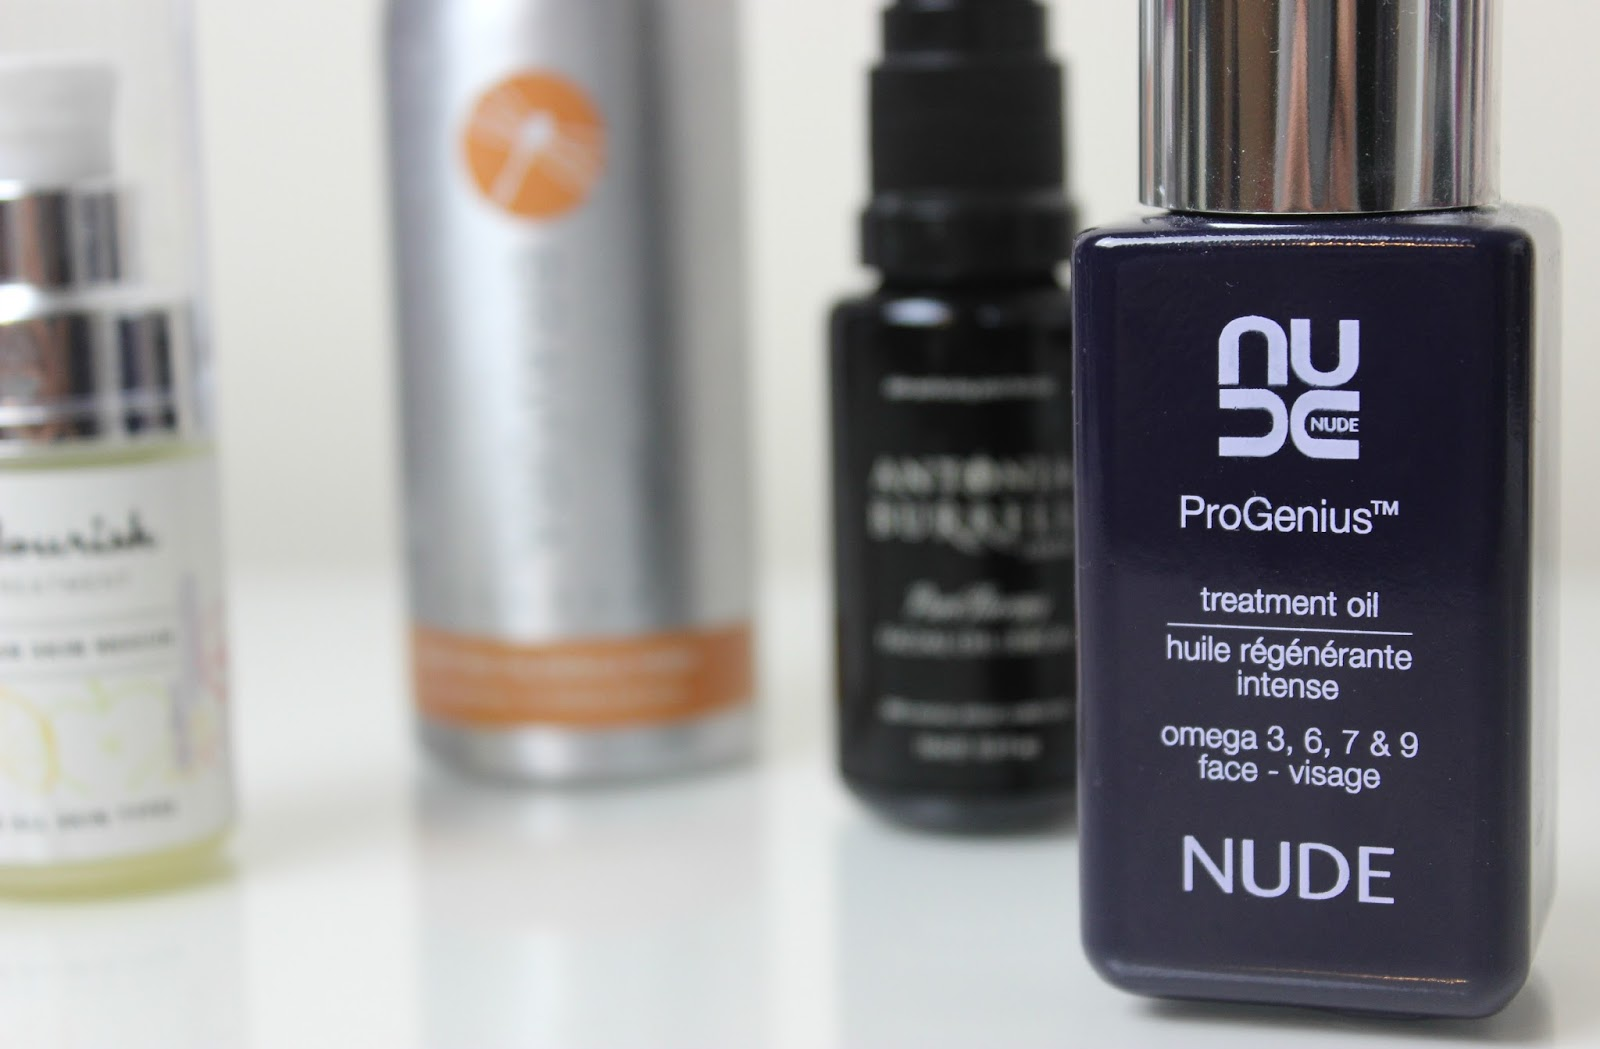 A picture of the Nude ProGenuis Treatment Oil